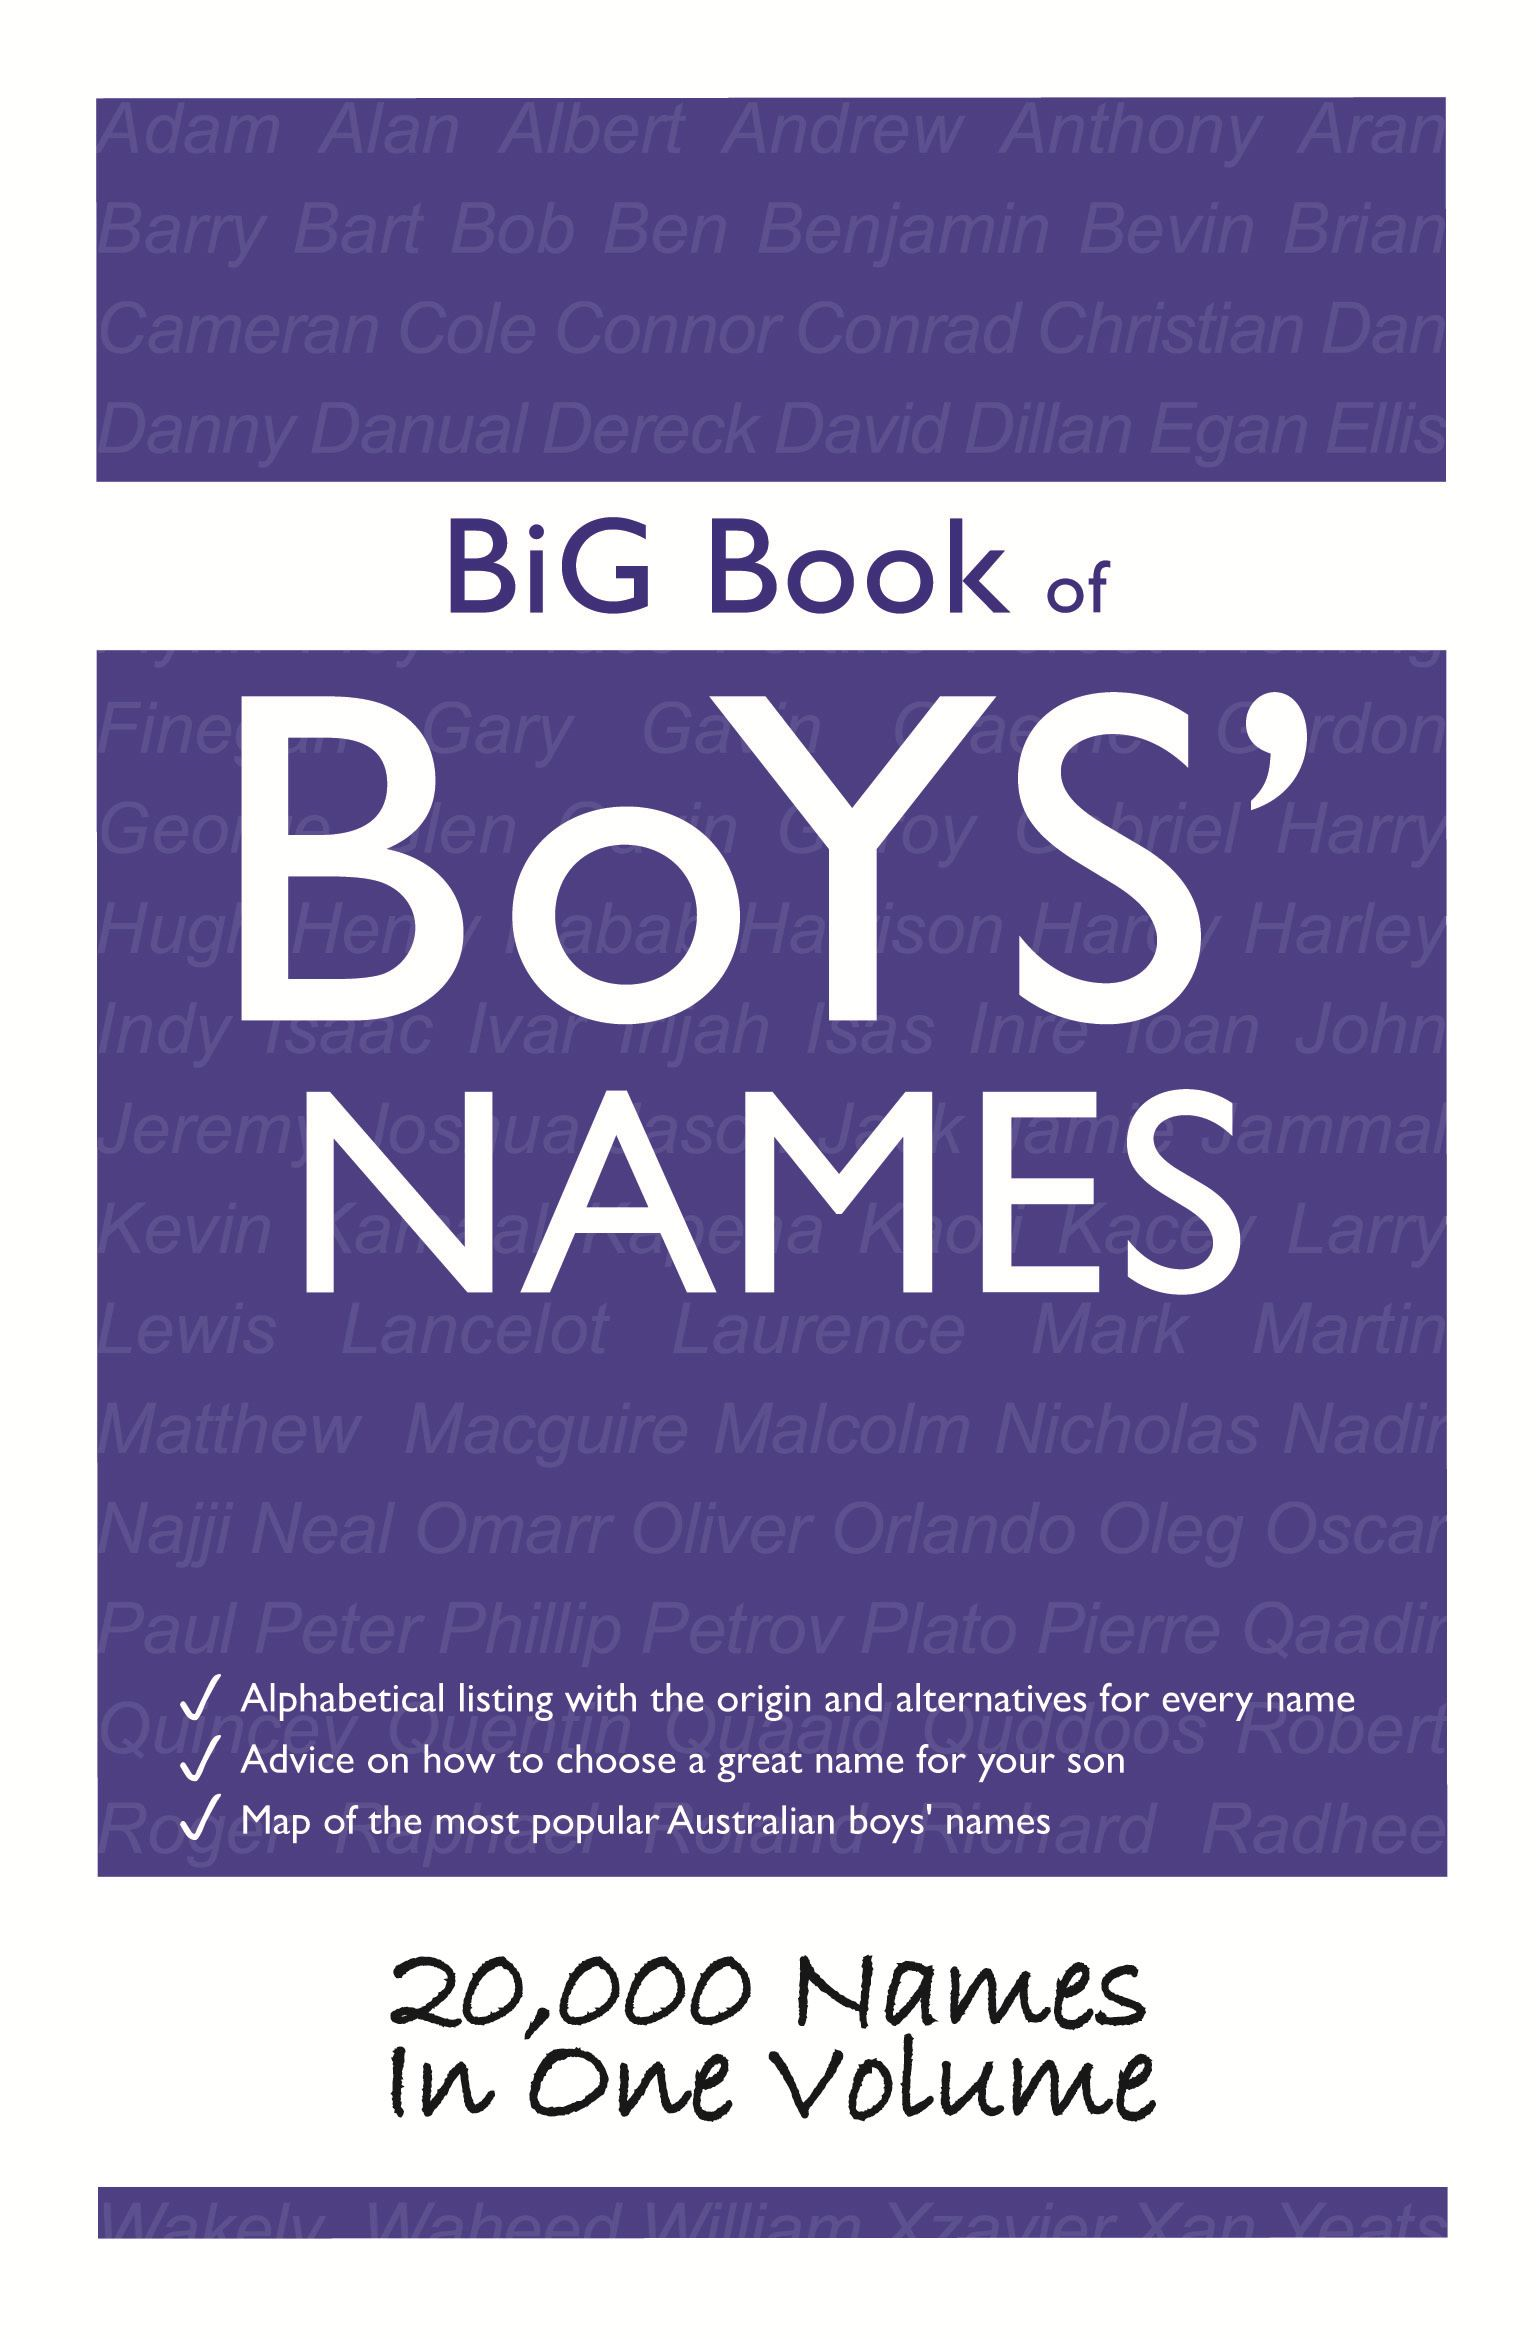 Big Book of Boys Names